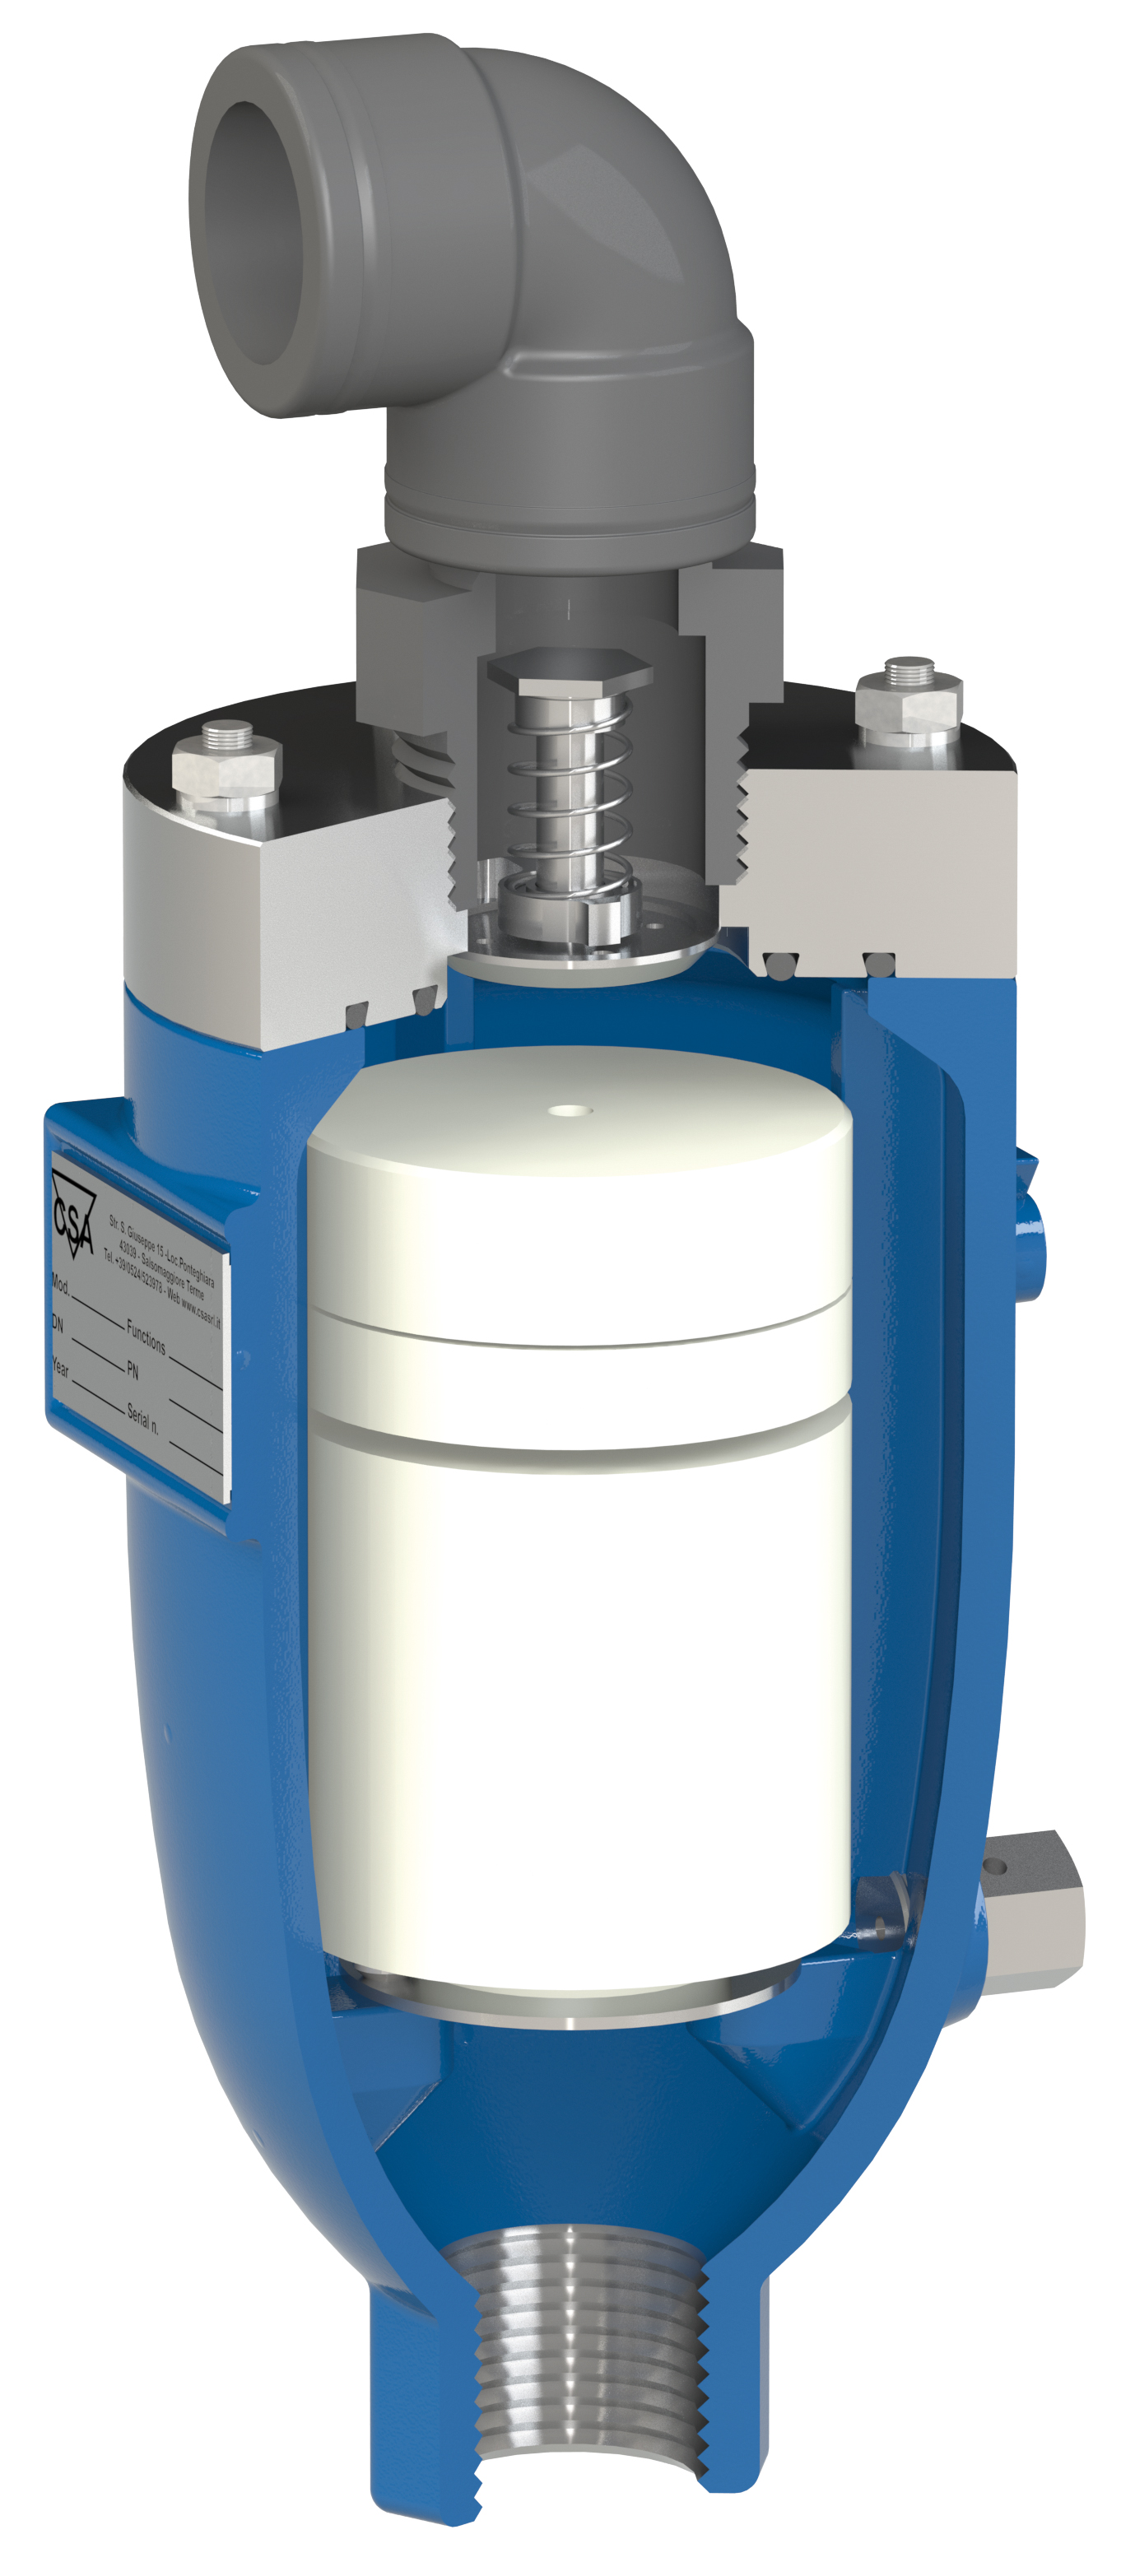 """Fox-3F-RFP-HR air valve for fire & building services """"AS4956 approved"""" and WSAA appraised."""